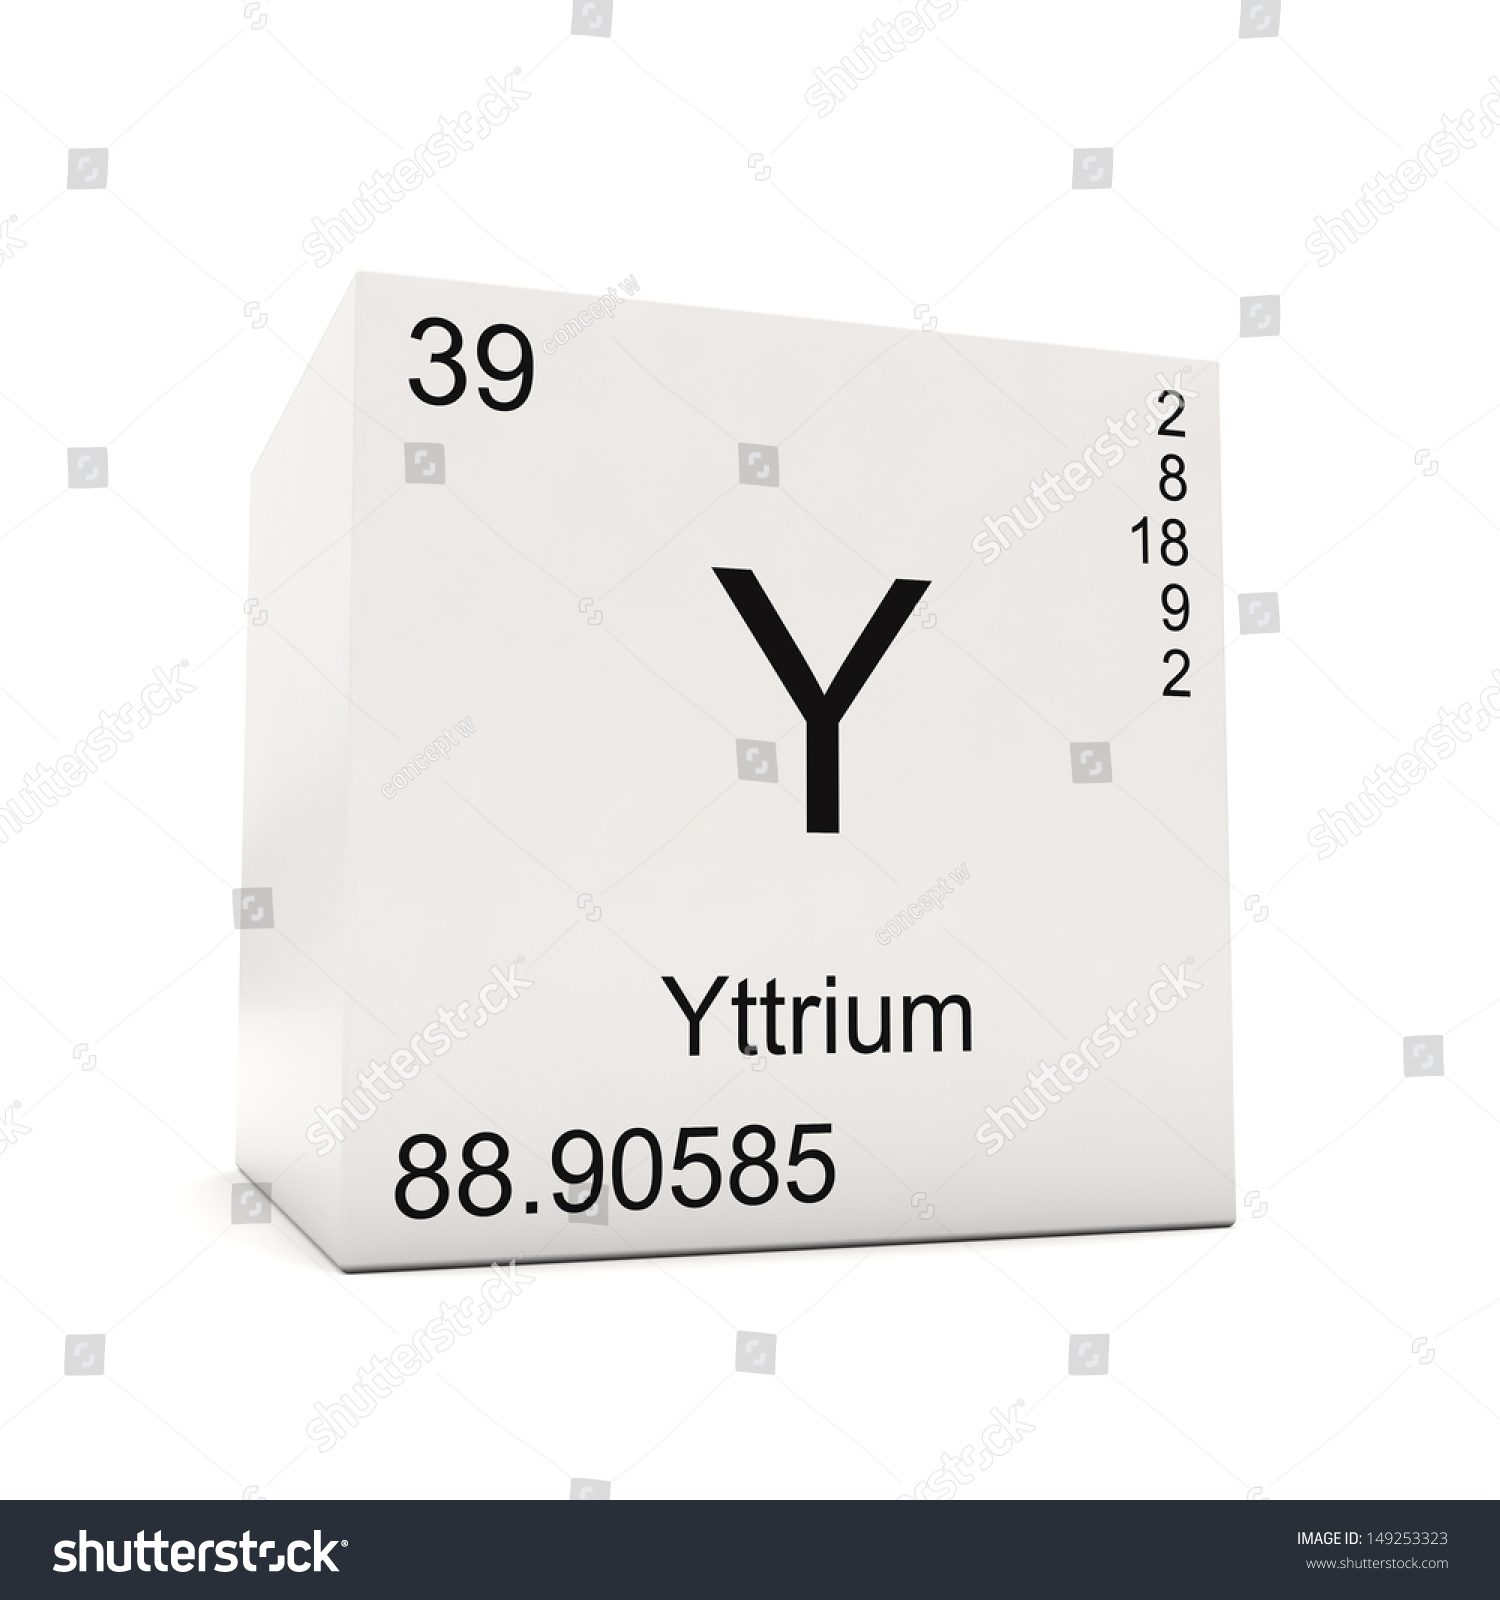 Cube yttrium element periodic table isolated stock illustration cube of yttrium element of the periodic table isolated on white background urtaz Images